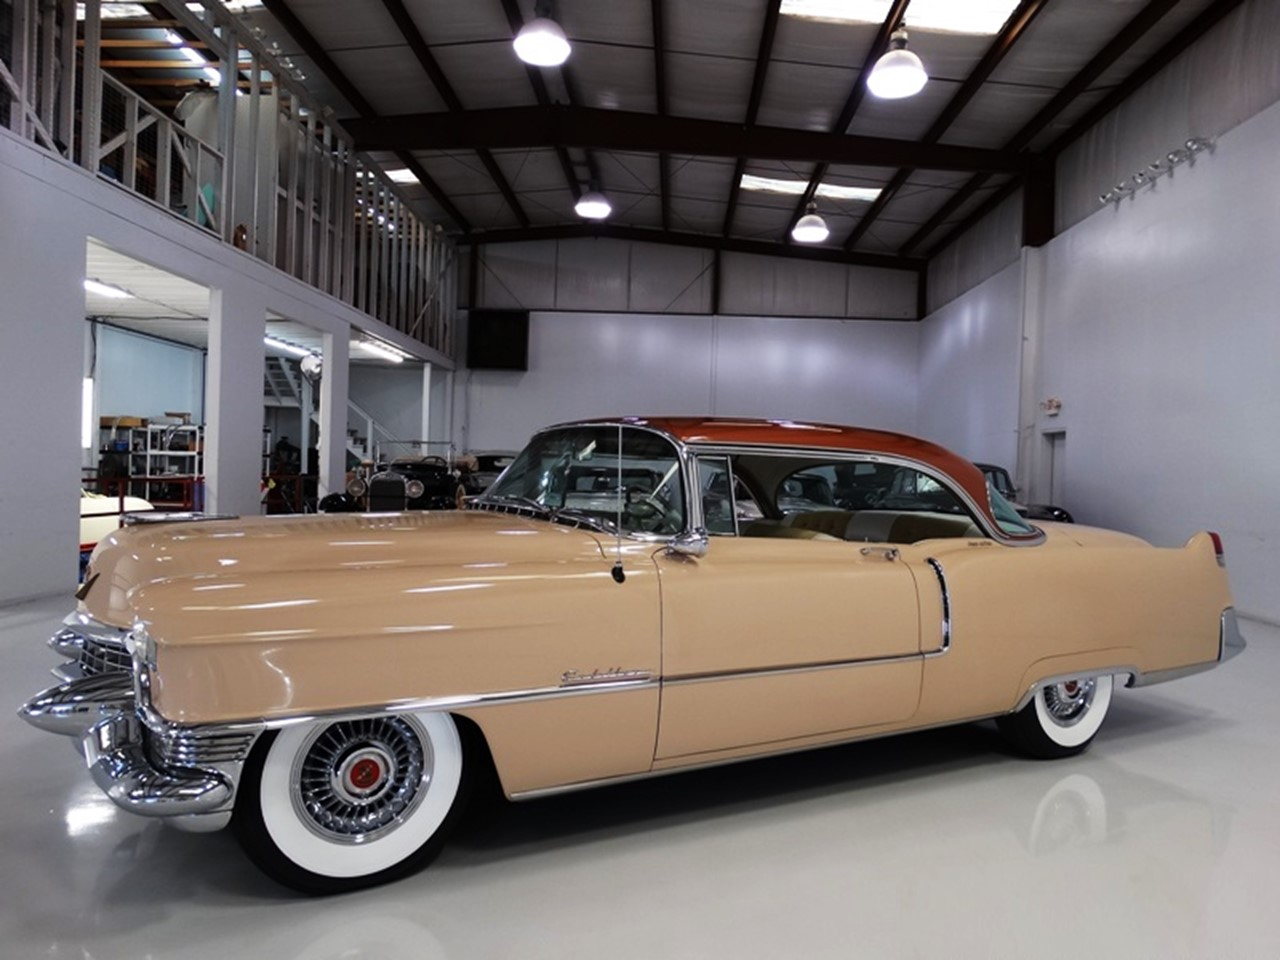 1955 Cadillac Series 62 Coupe deVille 5